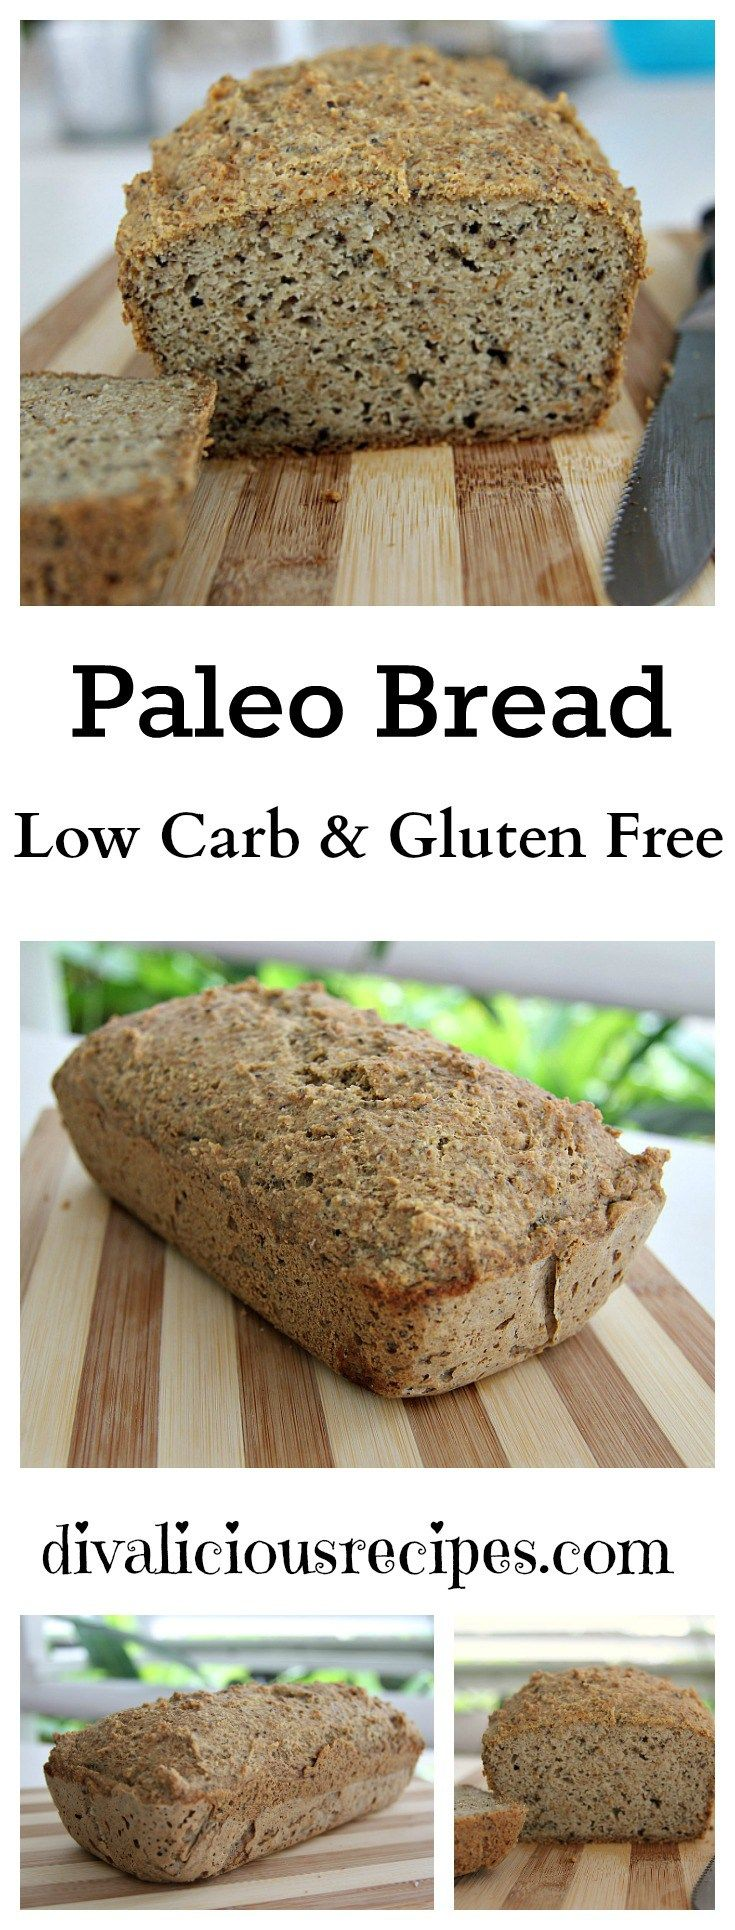 Paleo Bread   [1 ½ cups (144g) almond flour, 1/4 cup (28g) coconut flour, 1/4 cup (42g) ground flaxseed flour,  2 tbl psyllium husk powder,  1 ½ tbl baking powder,  2 tbl (20g) chia seeds, 1/4 tsp salt   Mix all.  Add      5 eggs, then  1/4 cup olive oil (or coconut oil), then  2 tbl apple cider vinegar, then 1/2 cup boiling water 350,45m]